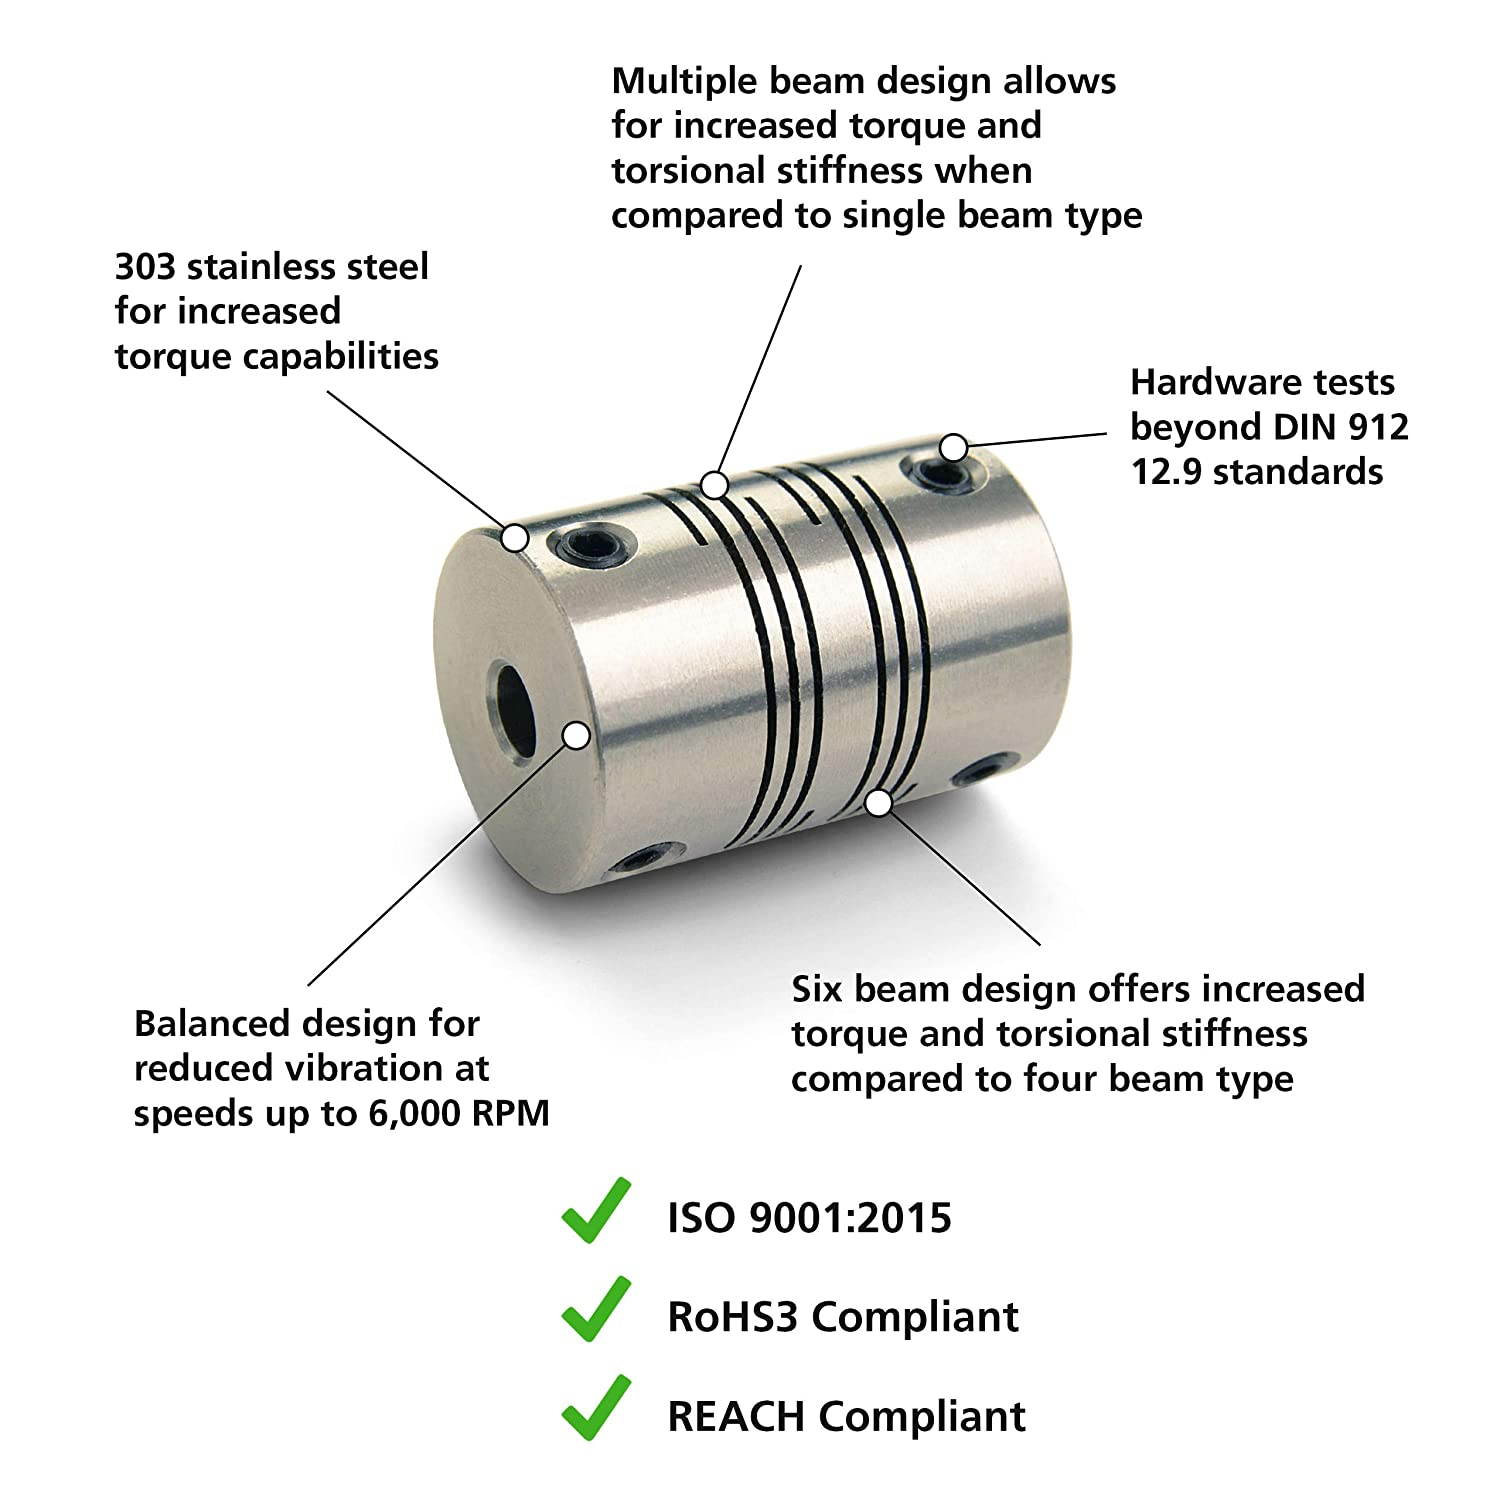 38.1 mm Length 28.6 mm OD 4-Beam Set Screw Style 11 mm x 8 mm Bores Ruland PSMR29-11-8-SS 303 Stainless Steel Beam Coupling